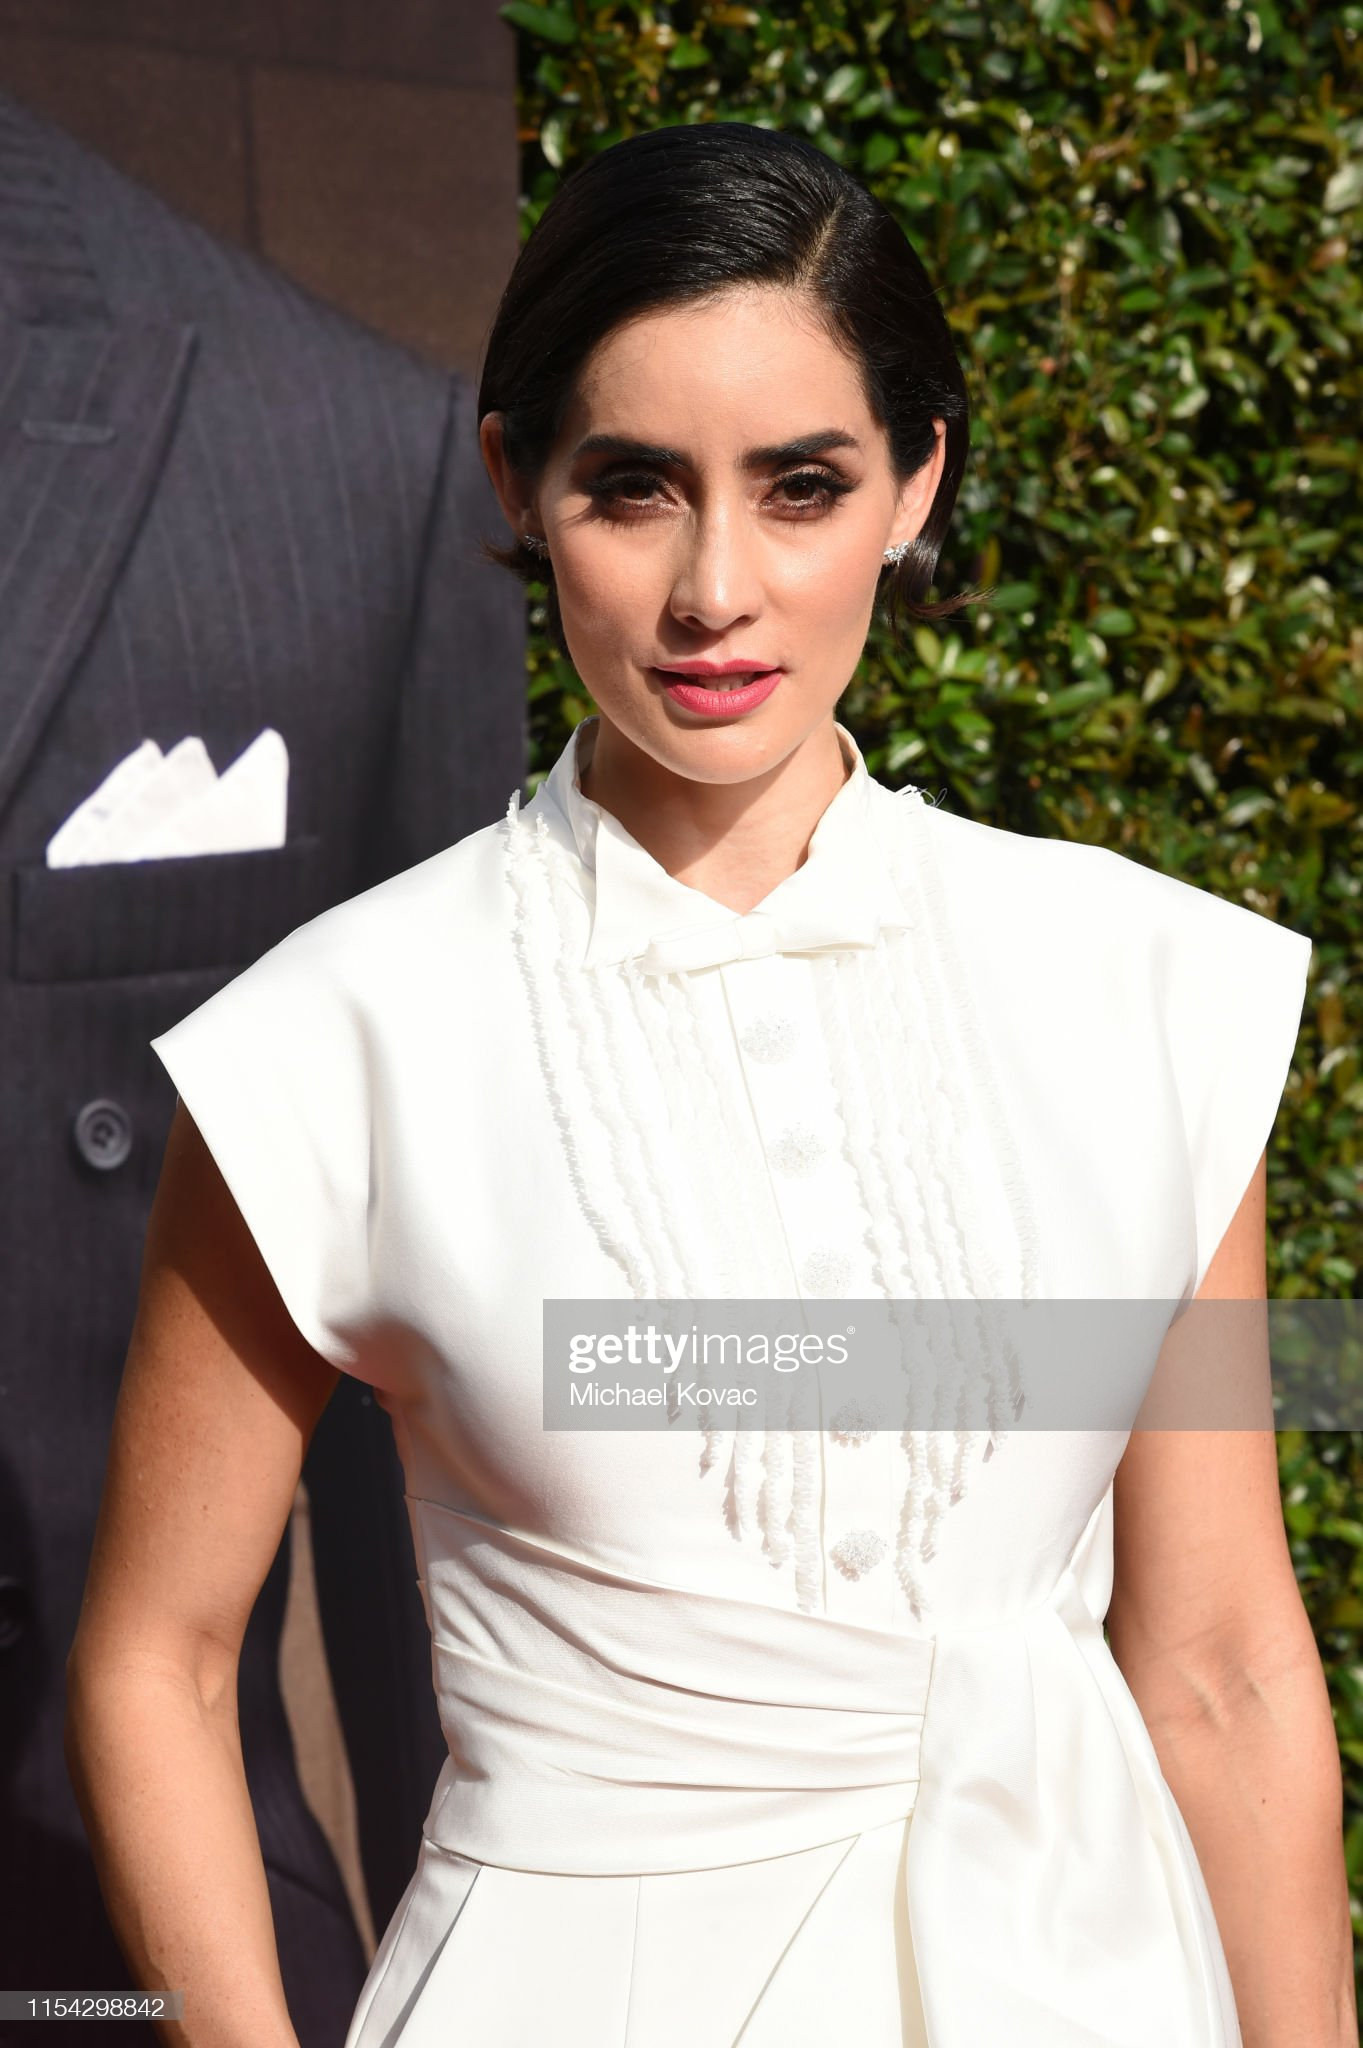 https://media.gettyimages.com/photos/paola-nez-attends-the-47th-afi-life-achievement-award-honoring-denzel-picture-id1154298842?s=2048x2048